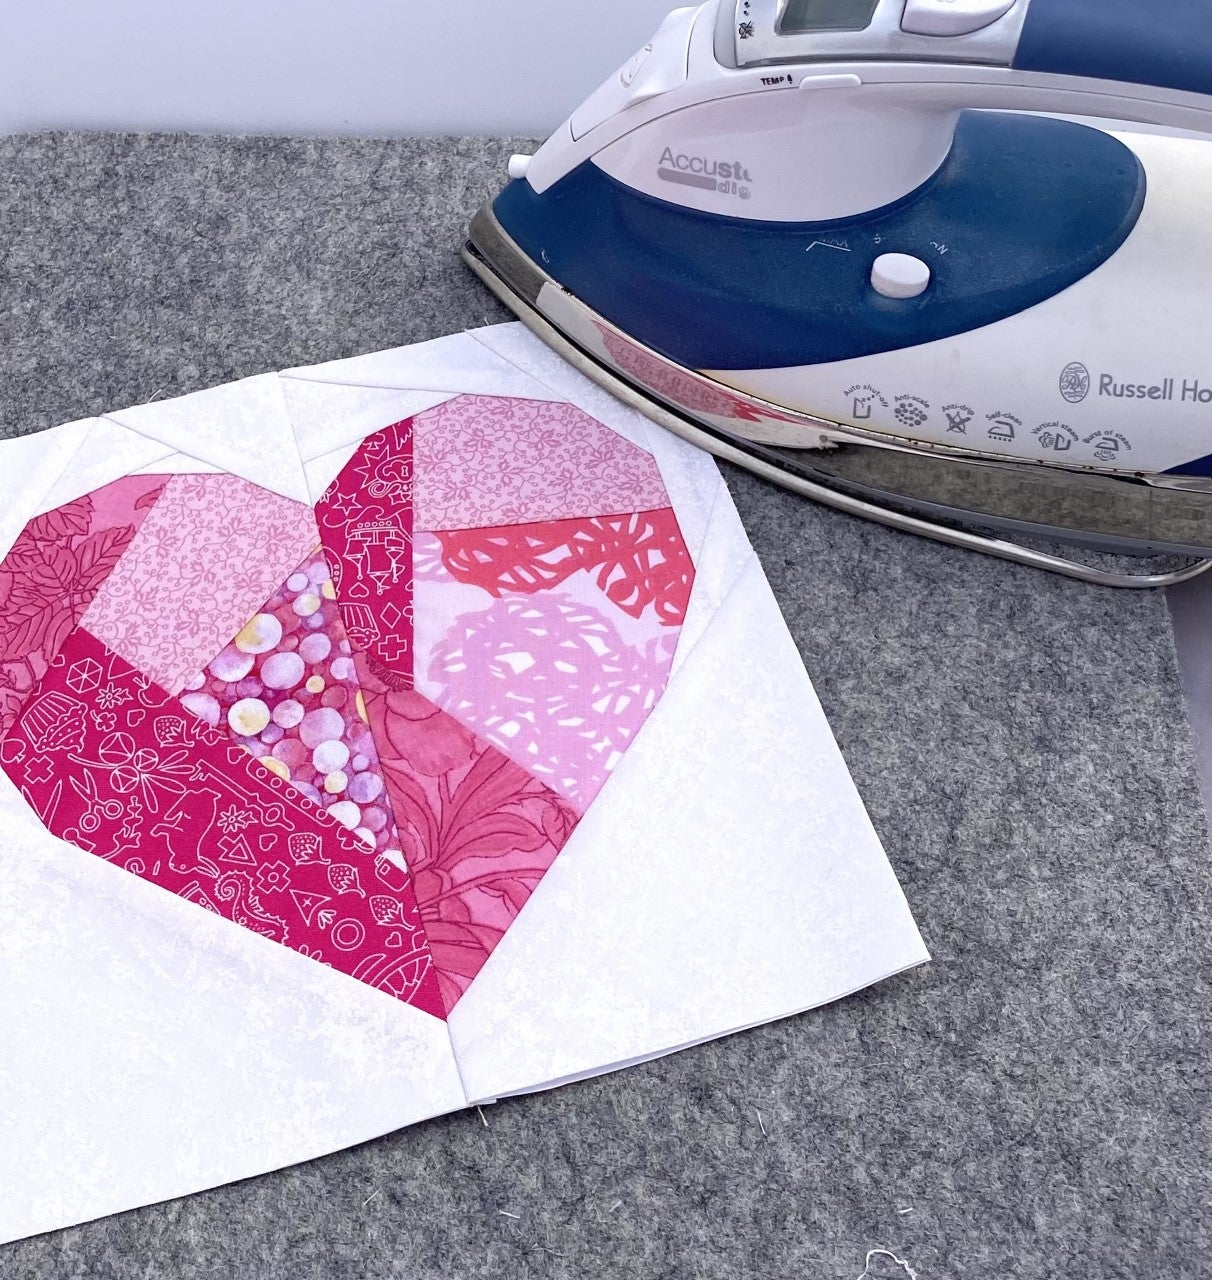 Pressing a paper pieced heart quilt block. Paper pieced geometric heart quilt block being pressed on a wool pressing mat by a Russell Hobbs Iron.